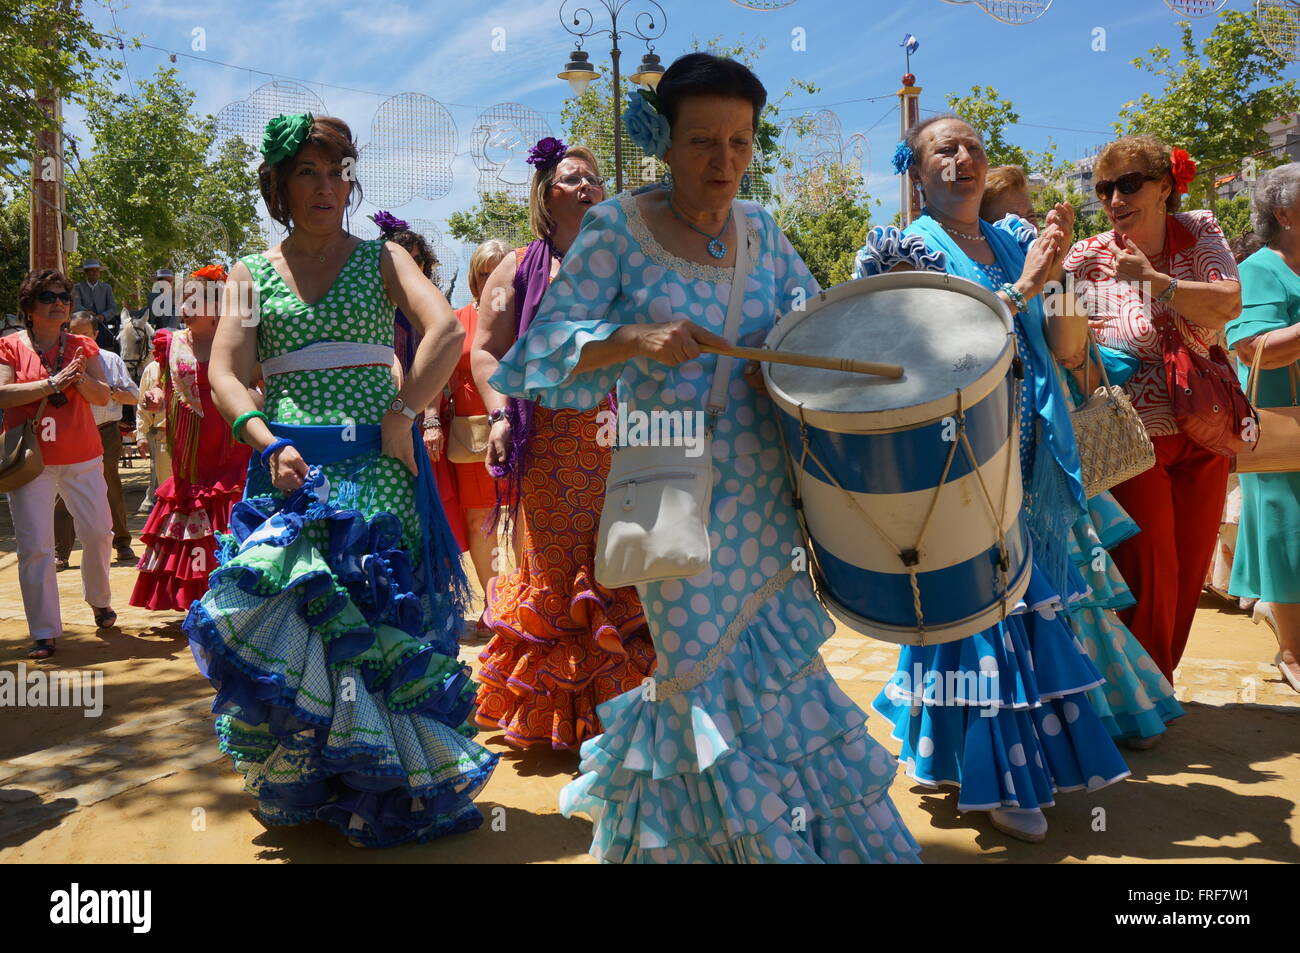 Andalucian Women during the Feria in Jerez -  09/05/2013  -  Spain / Andalusia / Jerez de la Frontera  -  Women - Stock Image